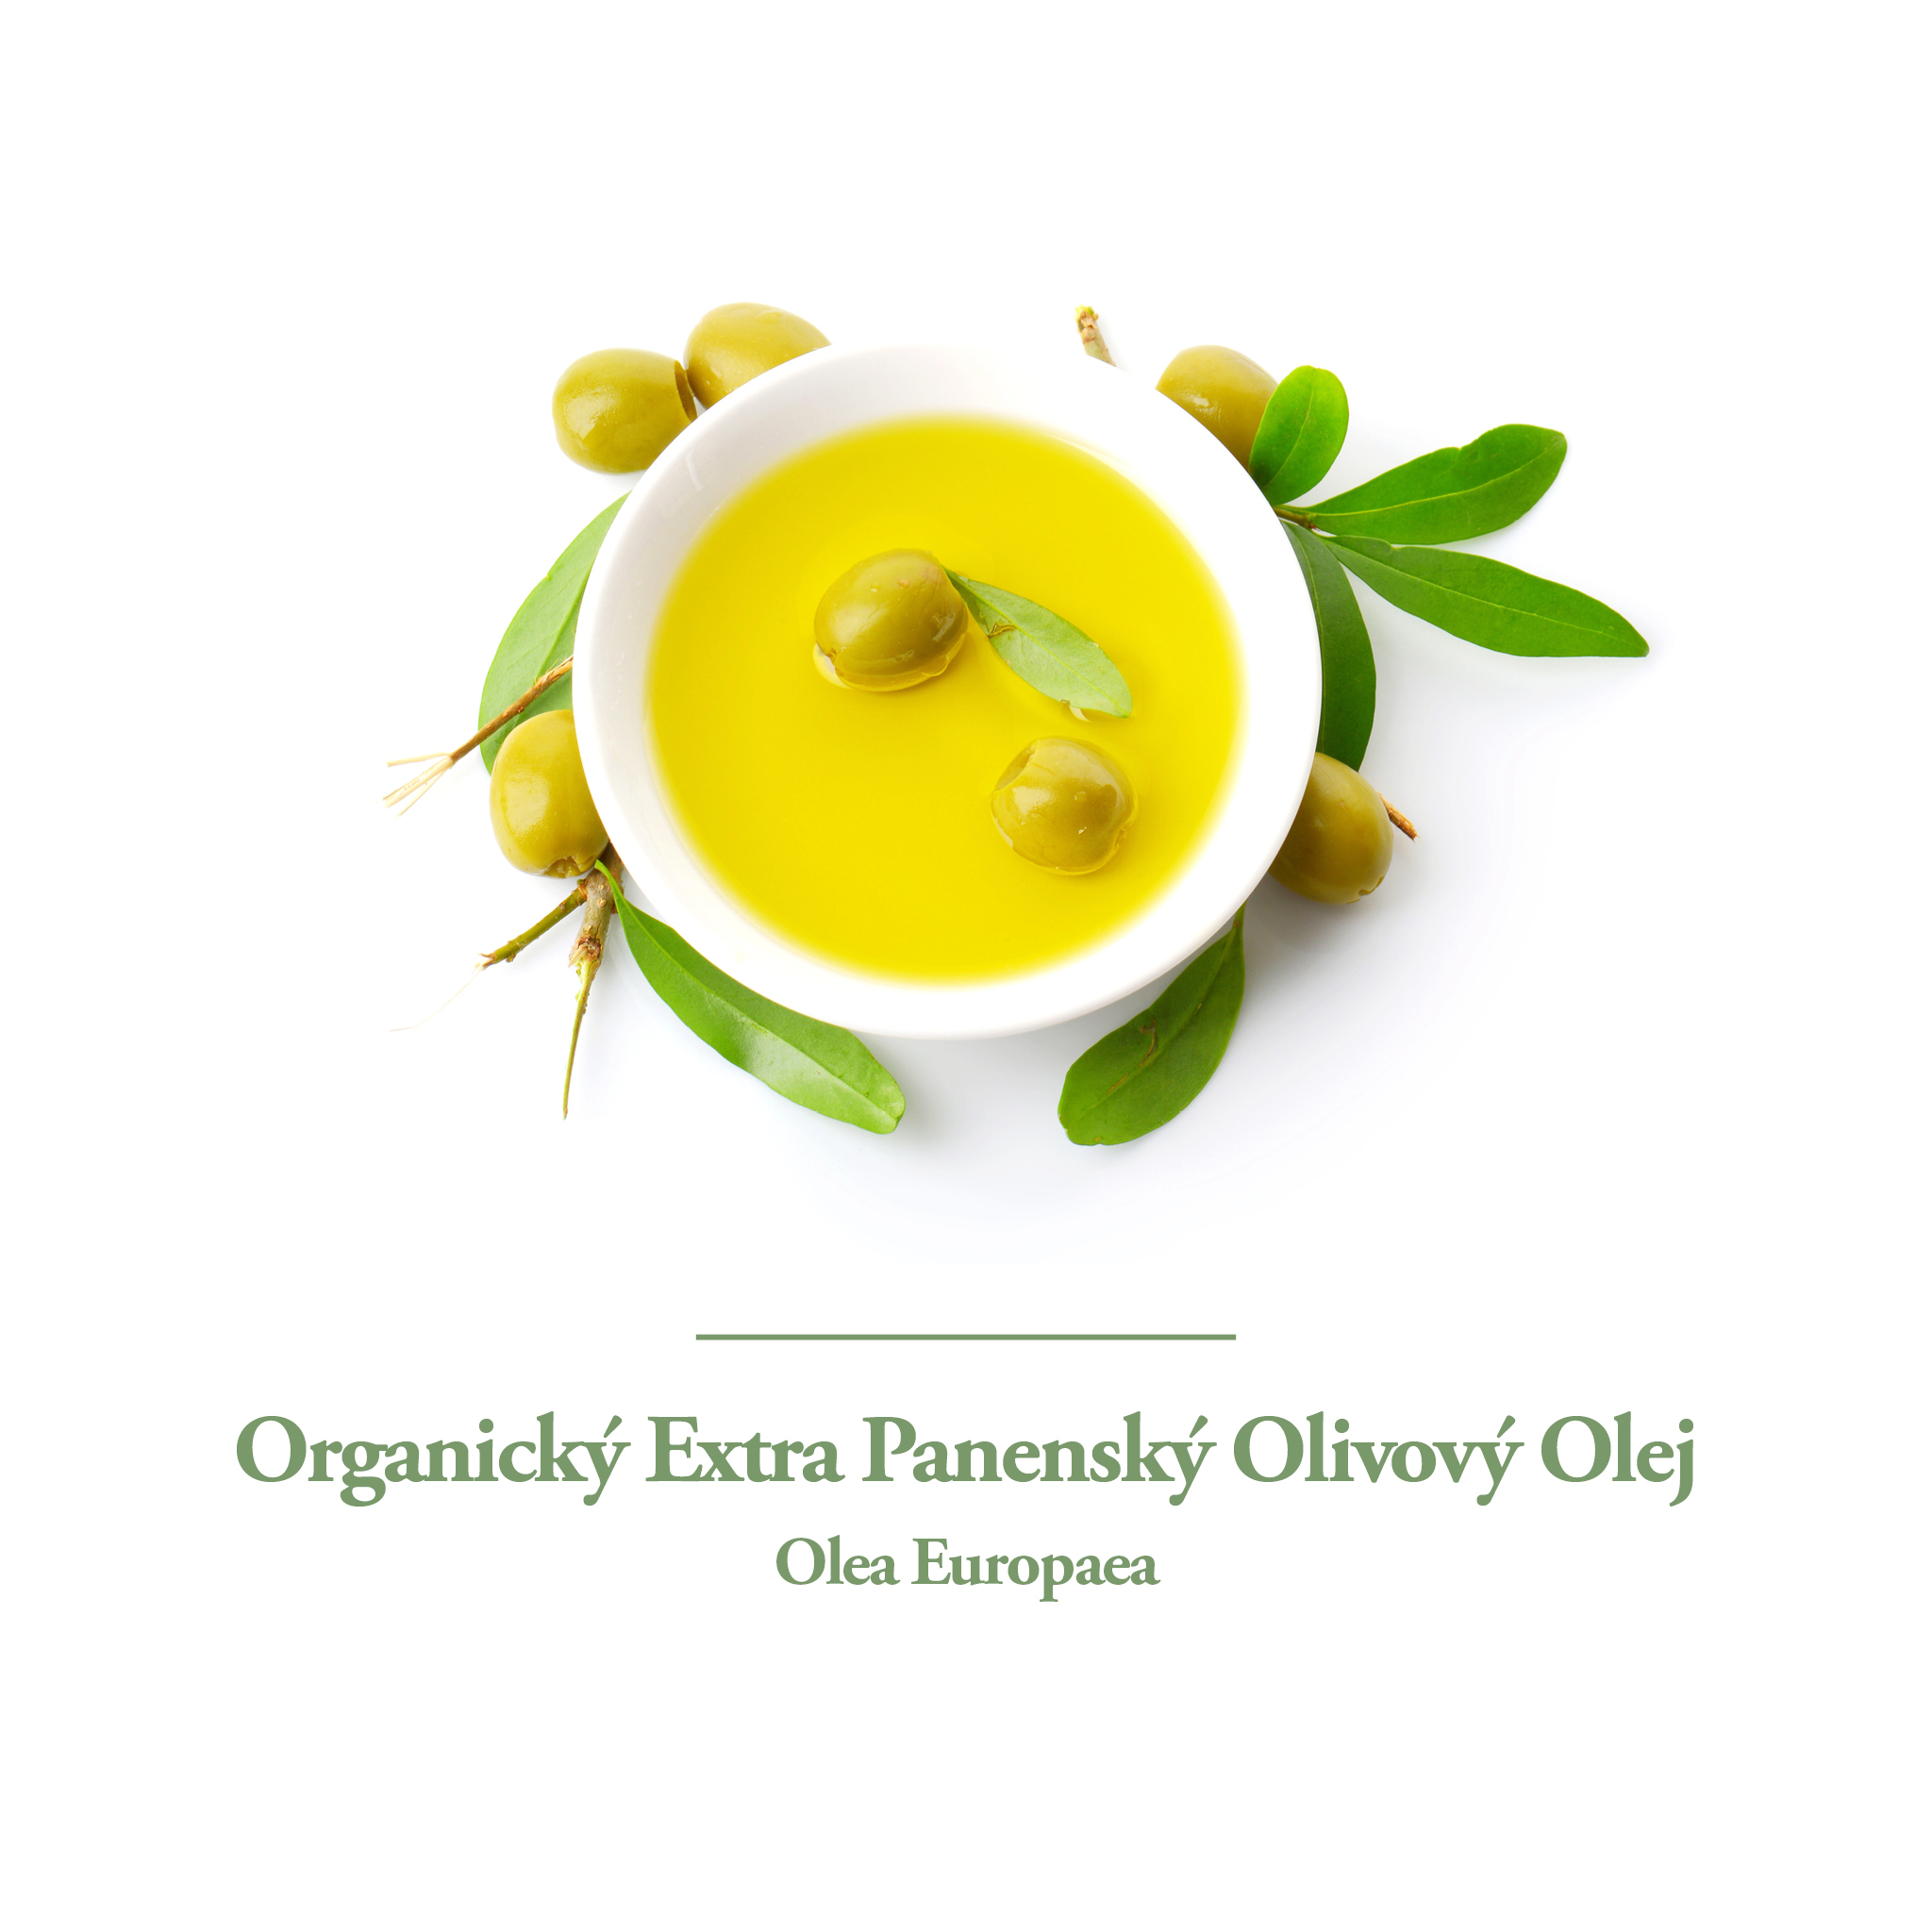 Charde_IG_posts_olive_herbs_2048x2048px_210220_2